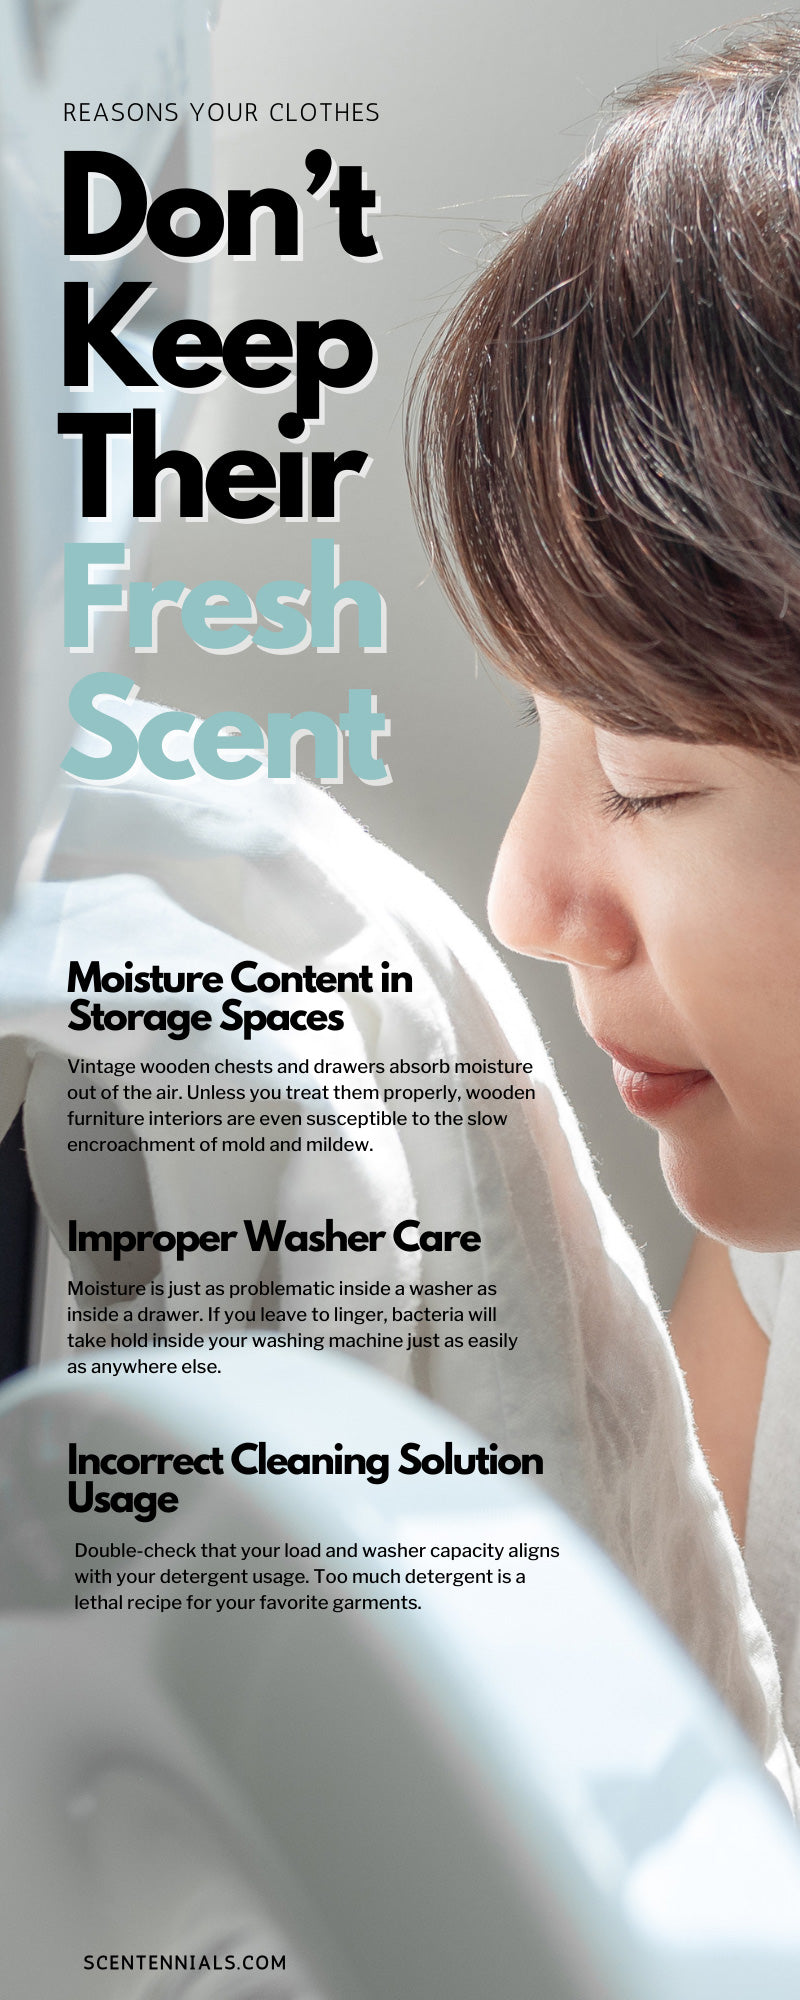 Reasons Your Clothes Don't Keep Their Fresh Scent